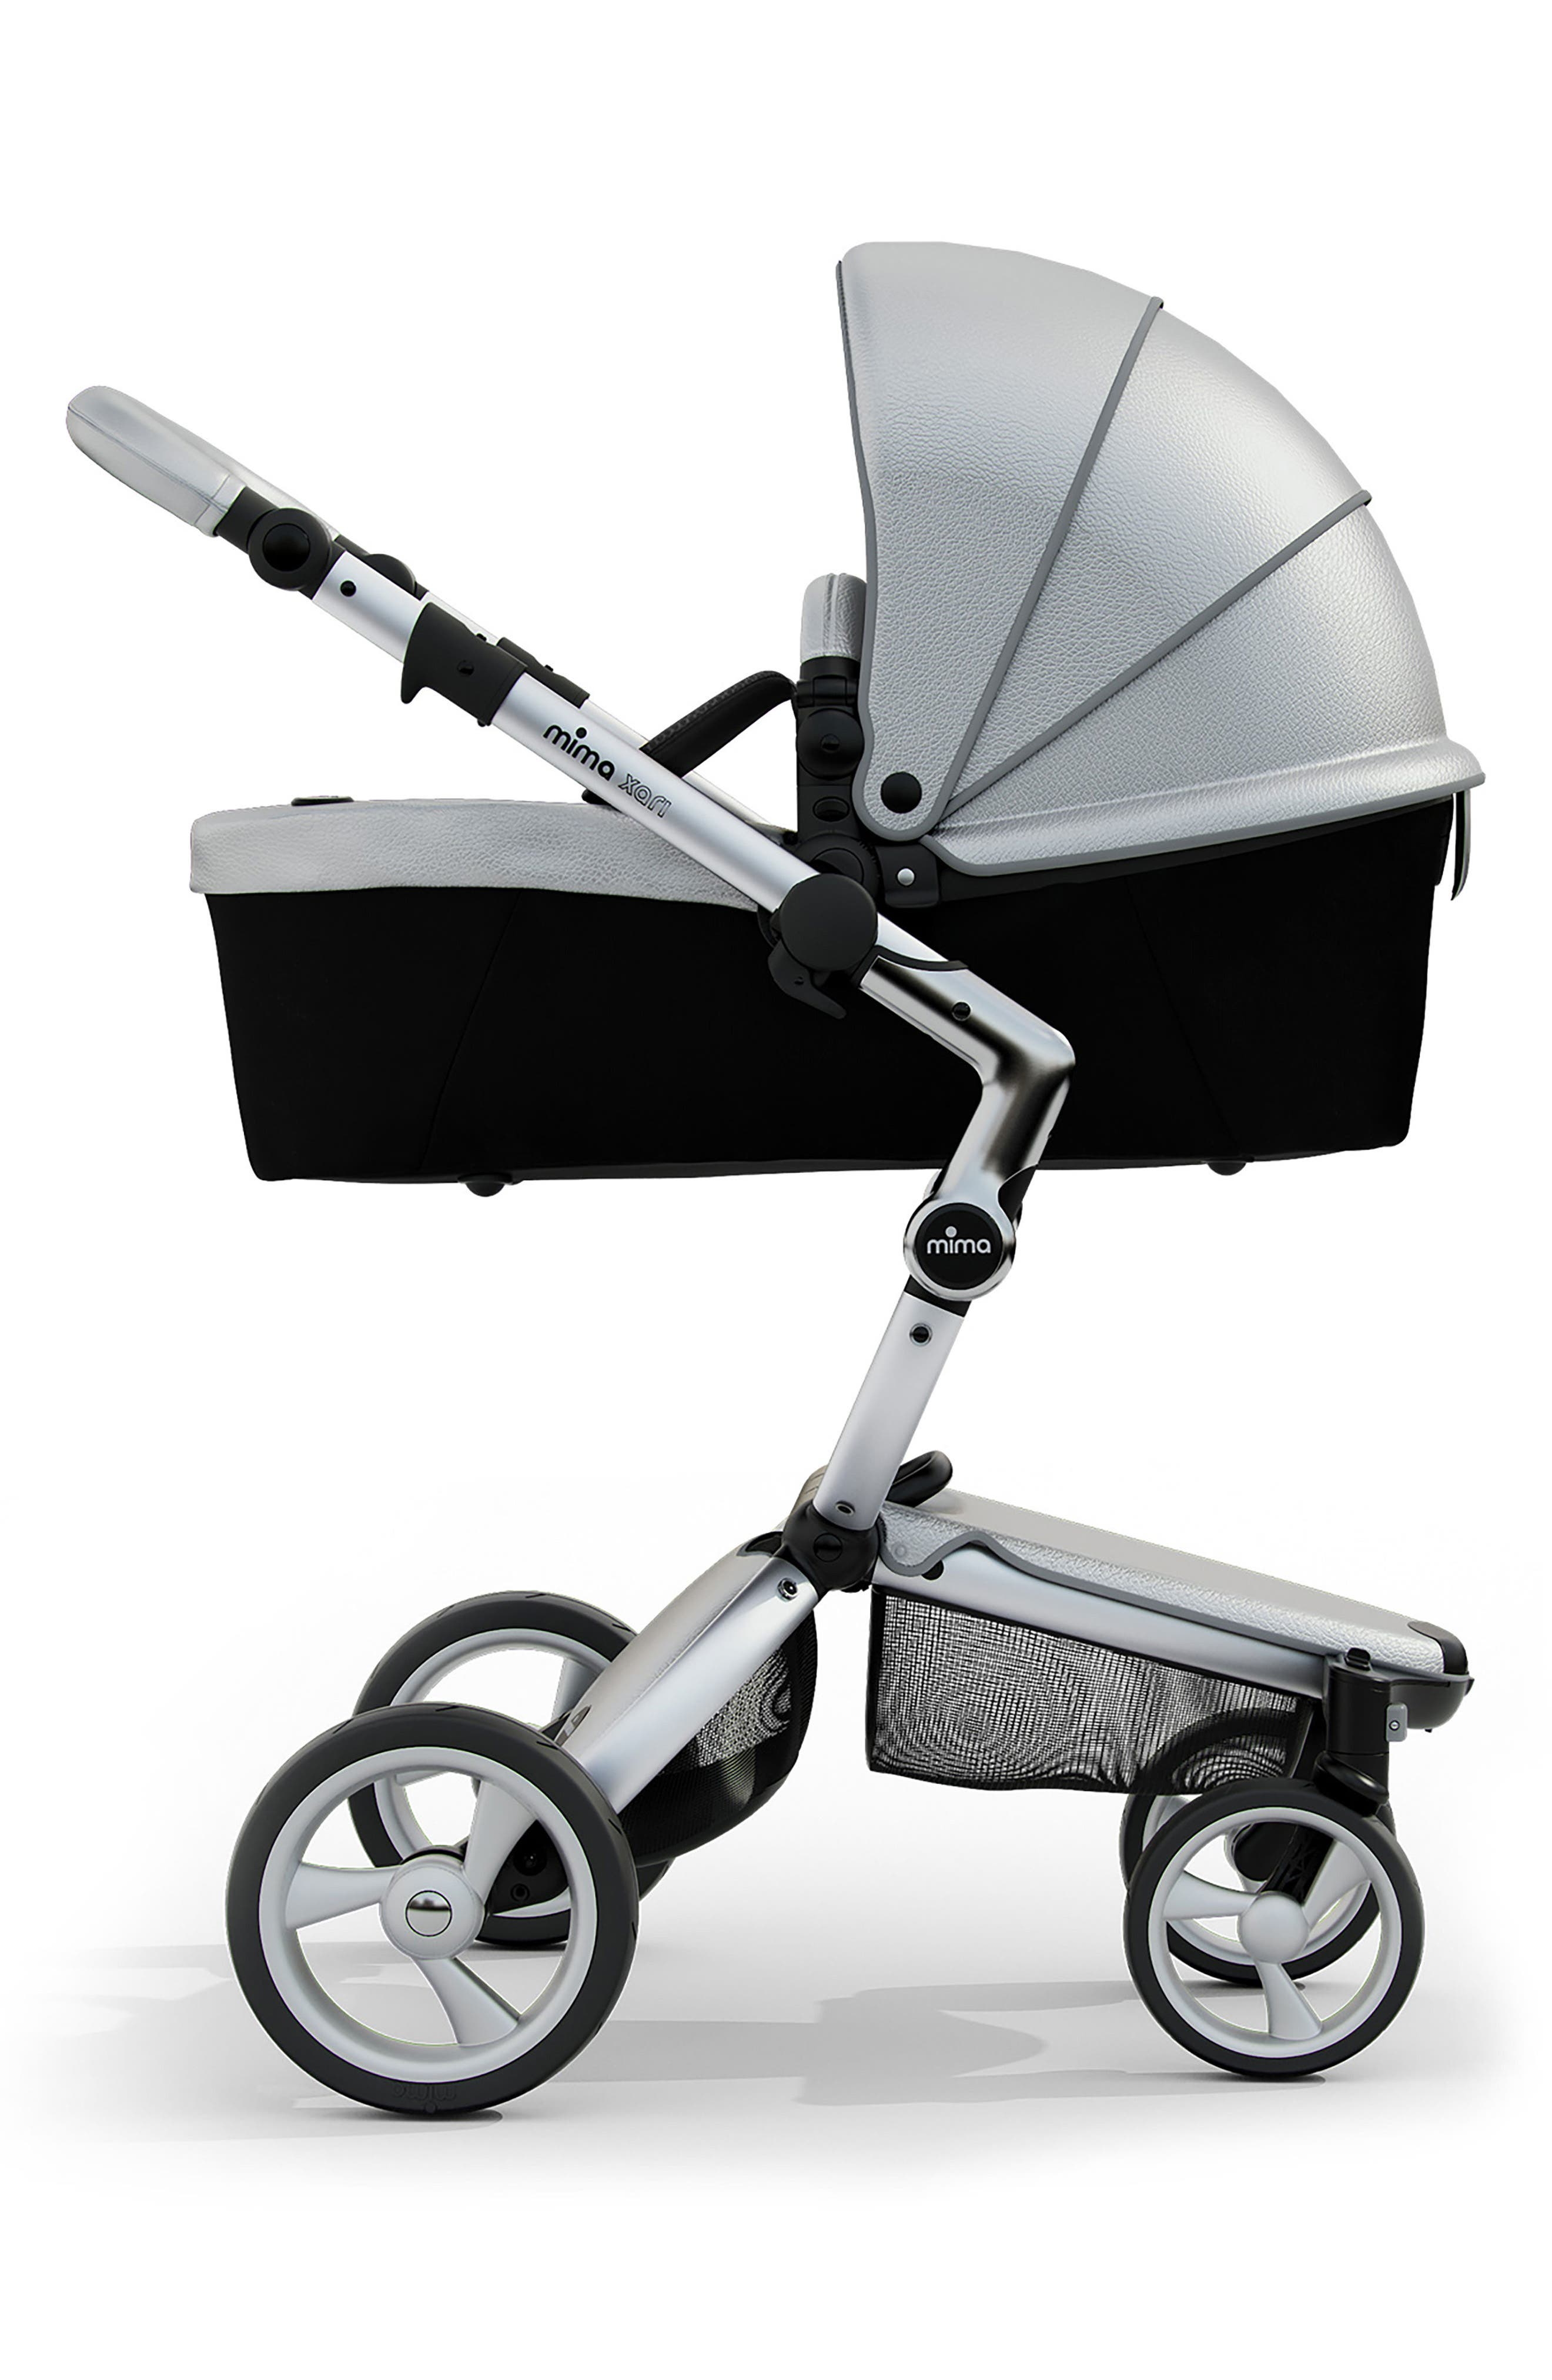 Xari Aluminum Chassis Stroller with Reversible Reclining Seat & Carrycot,                             Alternate thumbnail 4, color,                             ARGENTO / BLACK